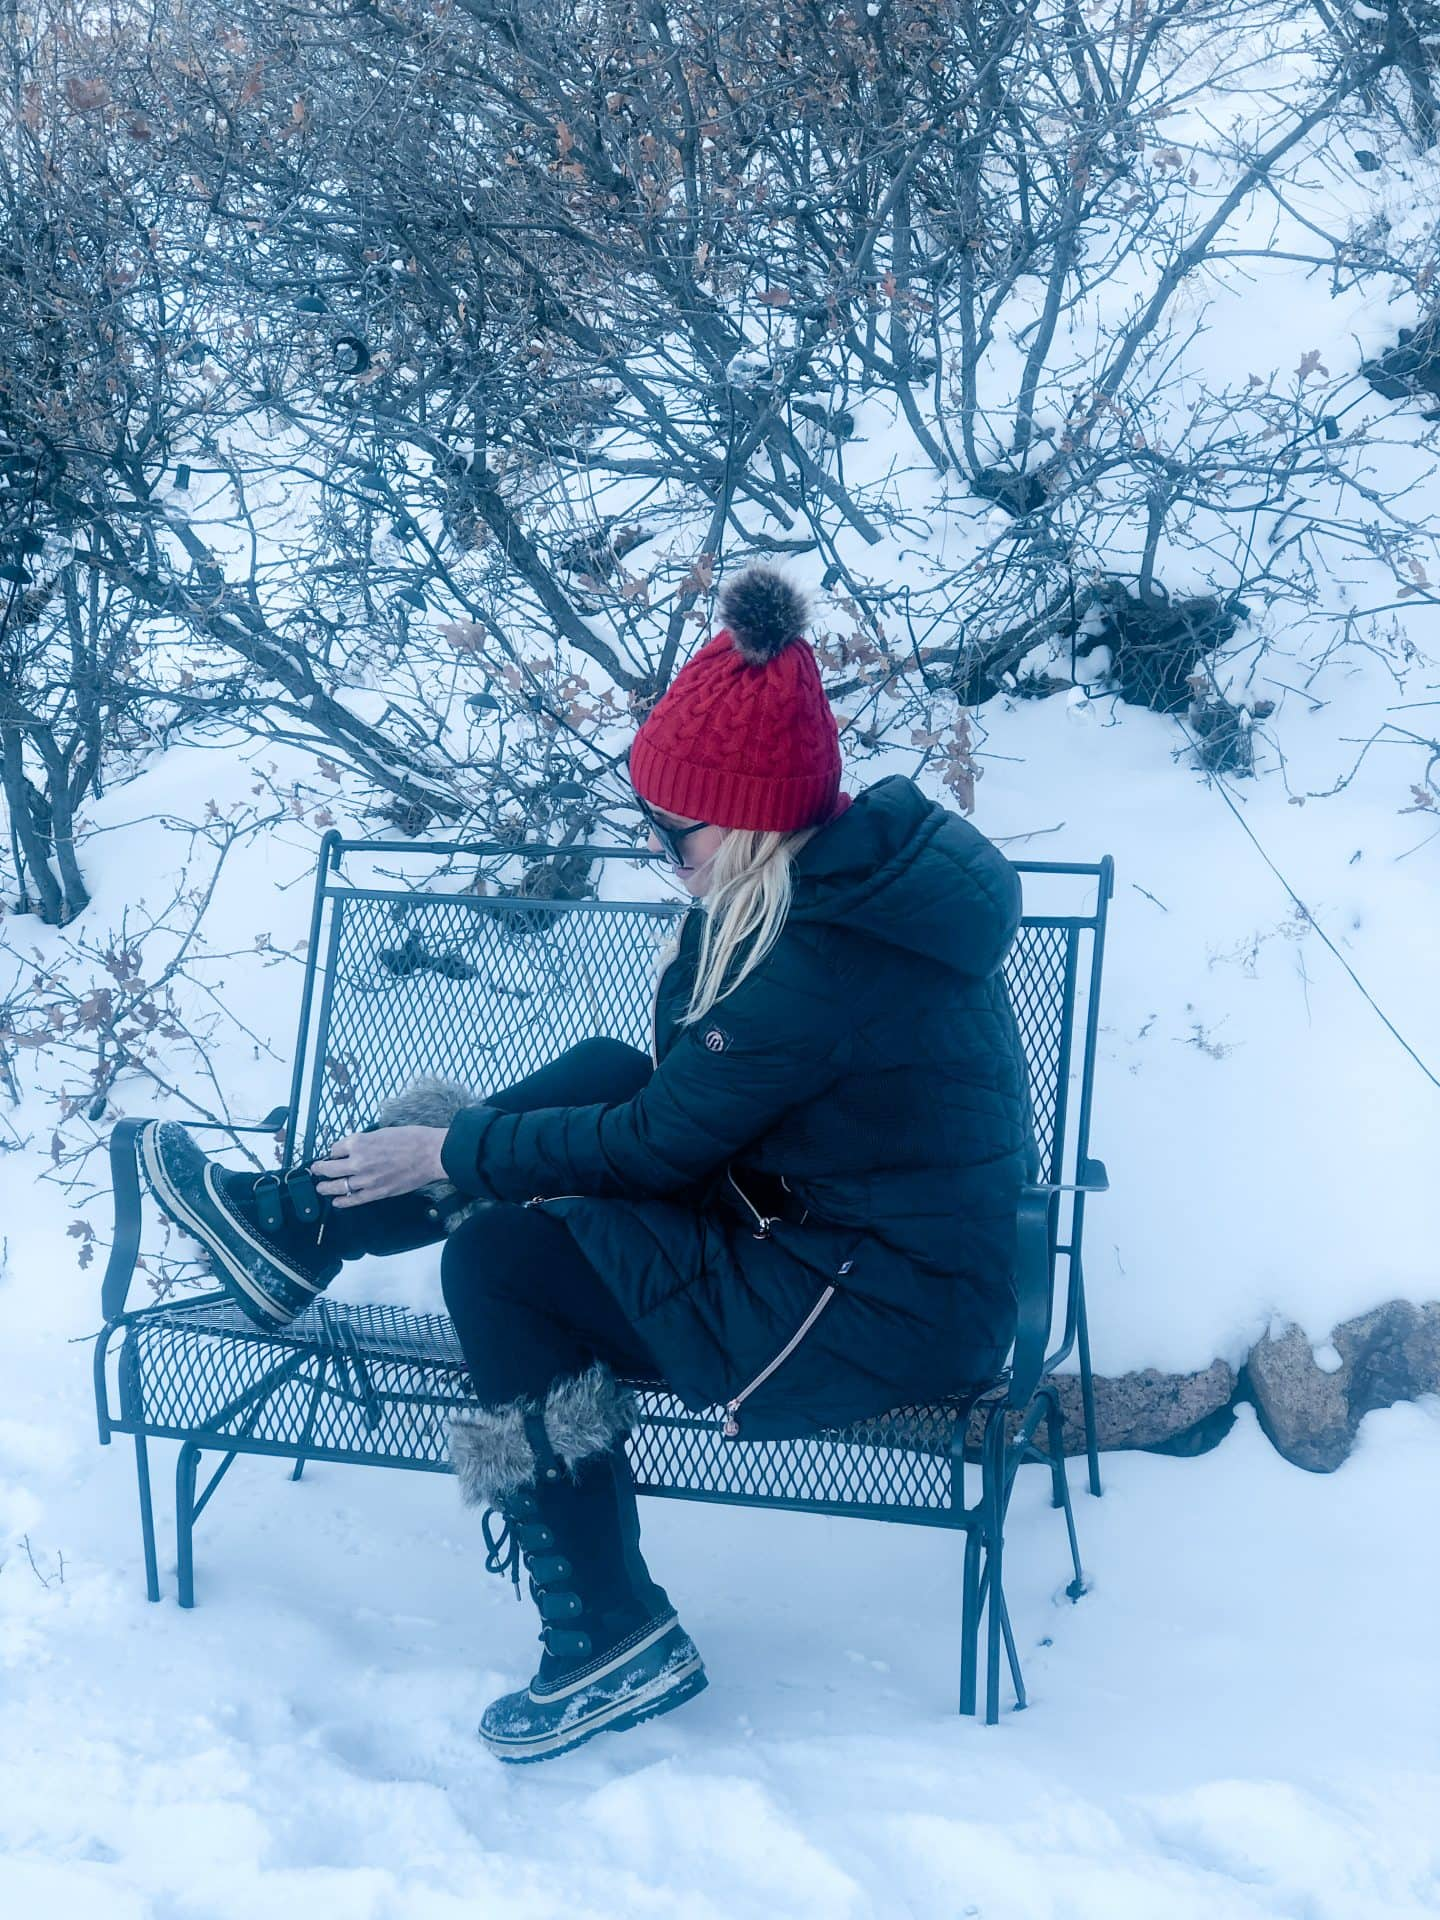 winter outfits. How to construct chic outfits that will keep you warm!